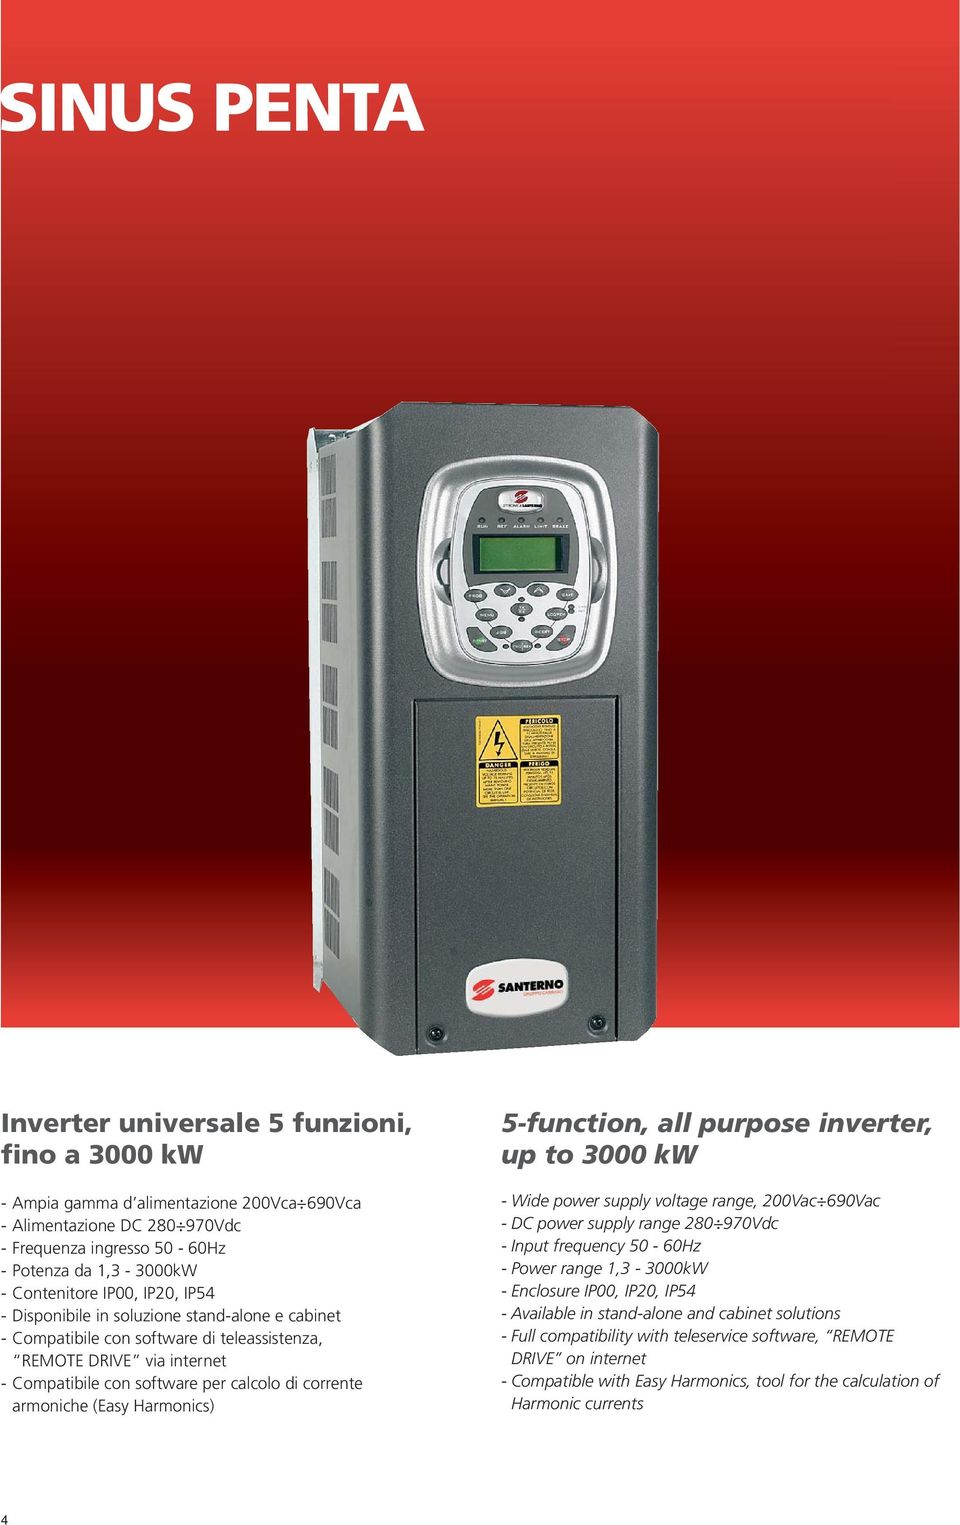 (Easy Harmonics) 5-function, all purpose inverter, up to 3000 kw - Wide power supply voltage range, 200Vac 690Vac - DC power supply range 280 970Vdc - Input frequency 50-60Hz - Power range 1,3-3000kW